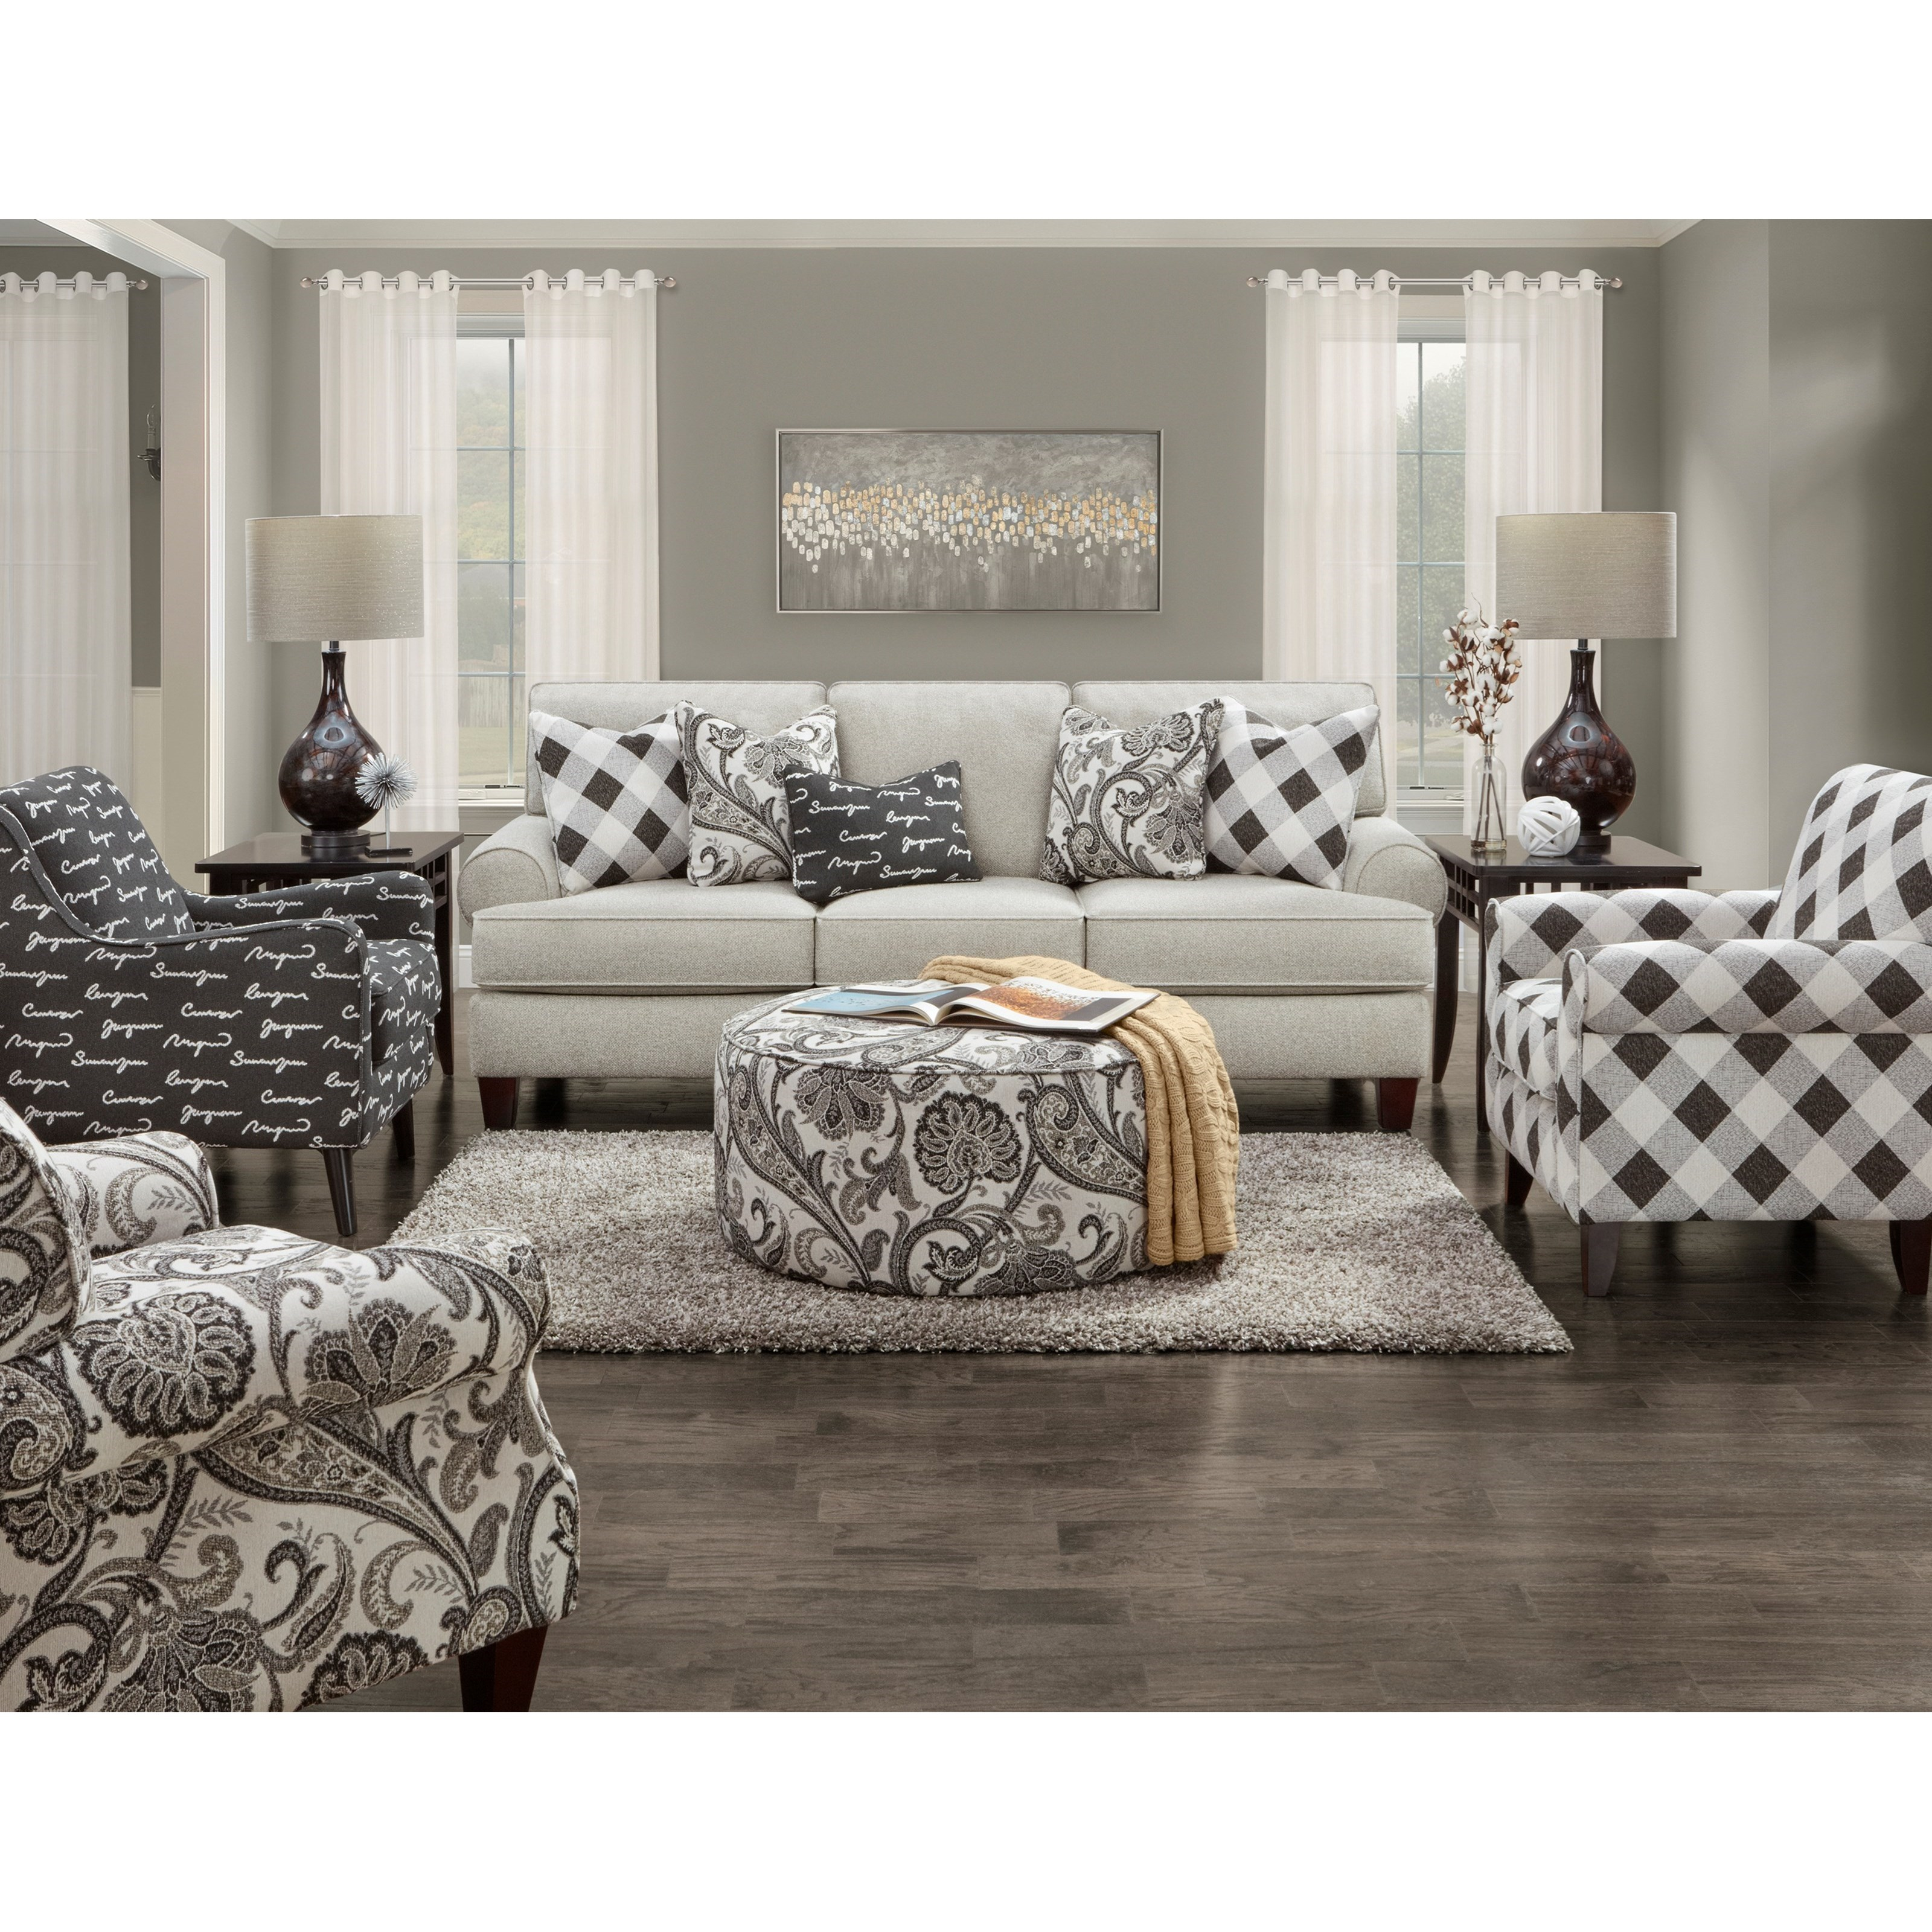 4200 Stationary Living Room Group by Fusion Furniture at Miller Waldrop Furniture and Decor